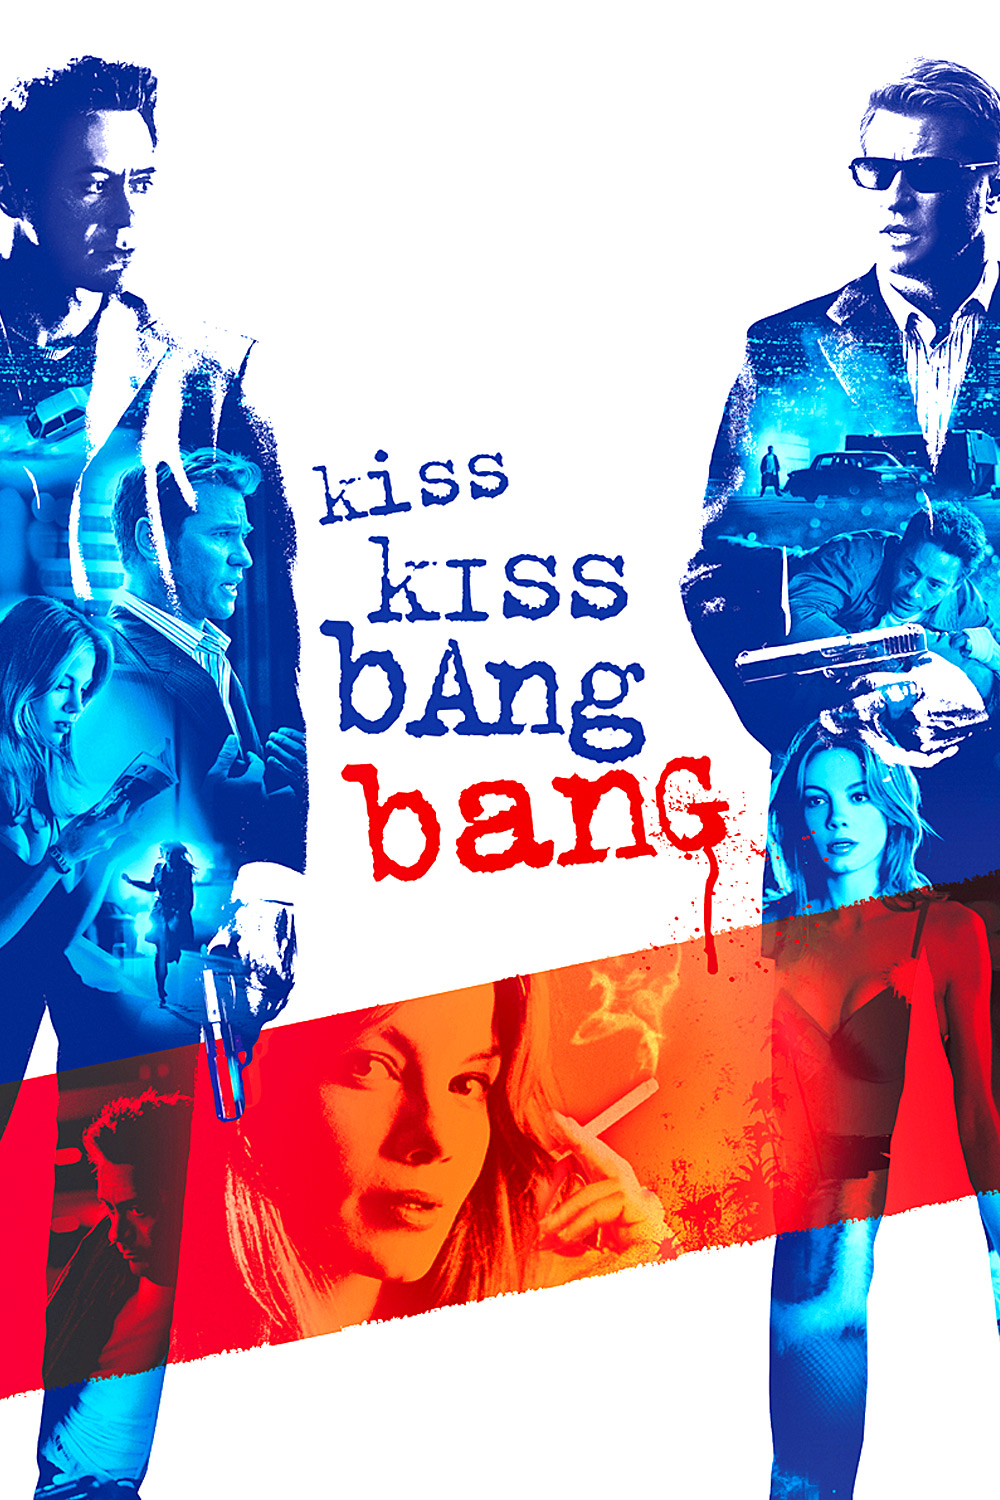 kiss-kiss-bang-bang_movie4go.com_.jpg